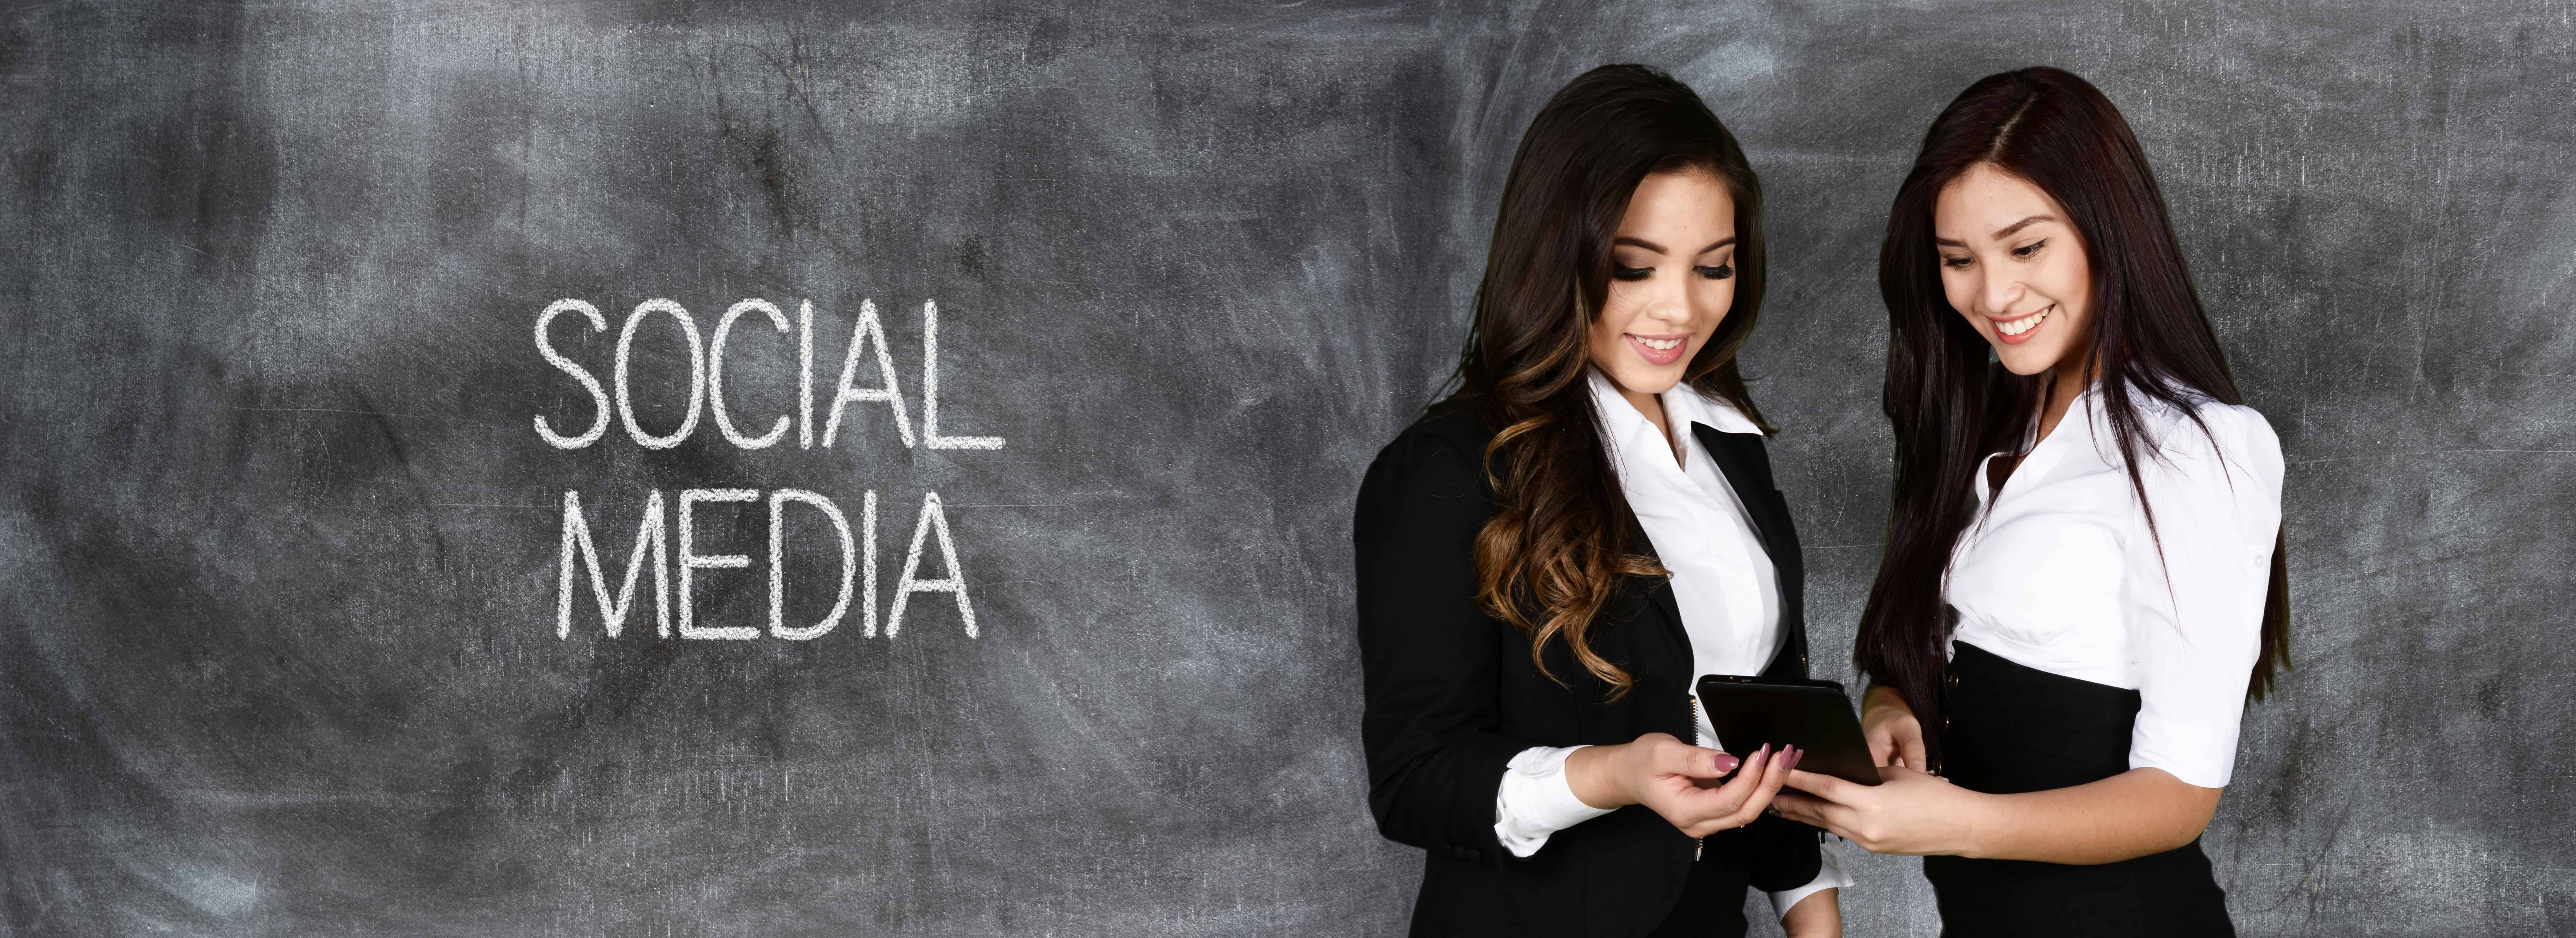 Confident businesswomen who are working on social media